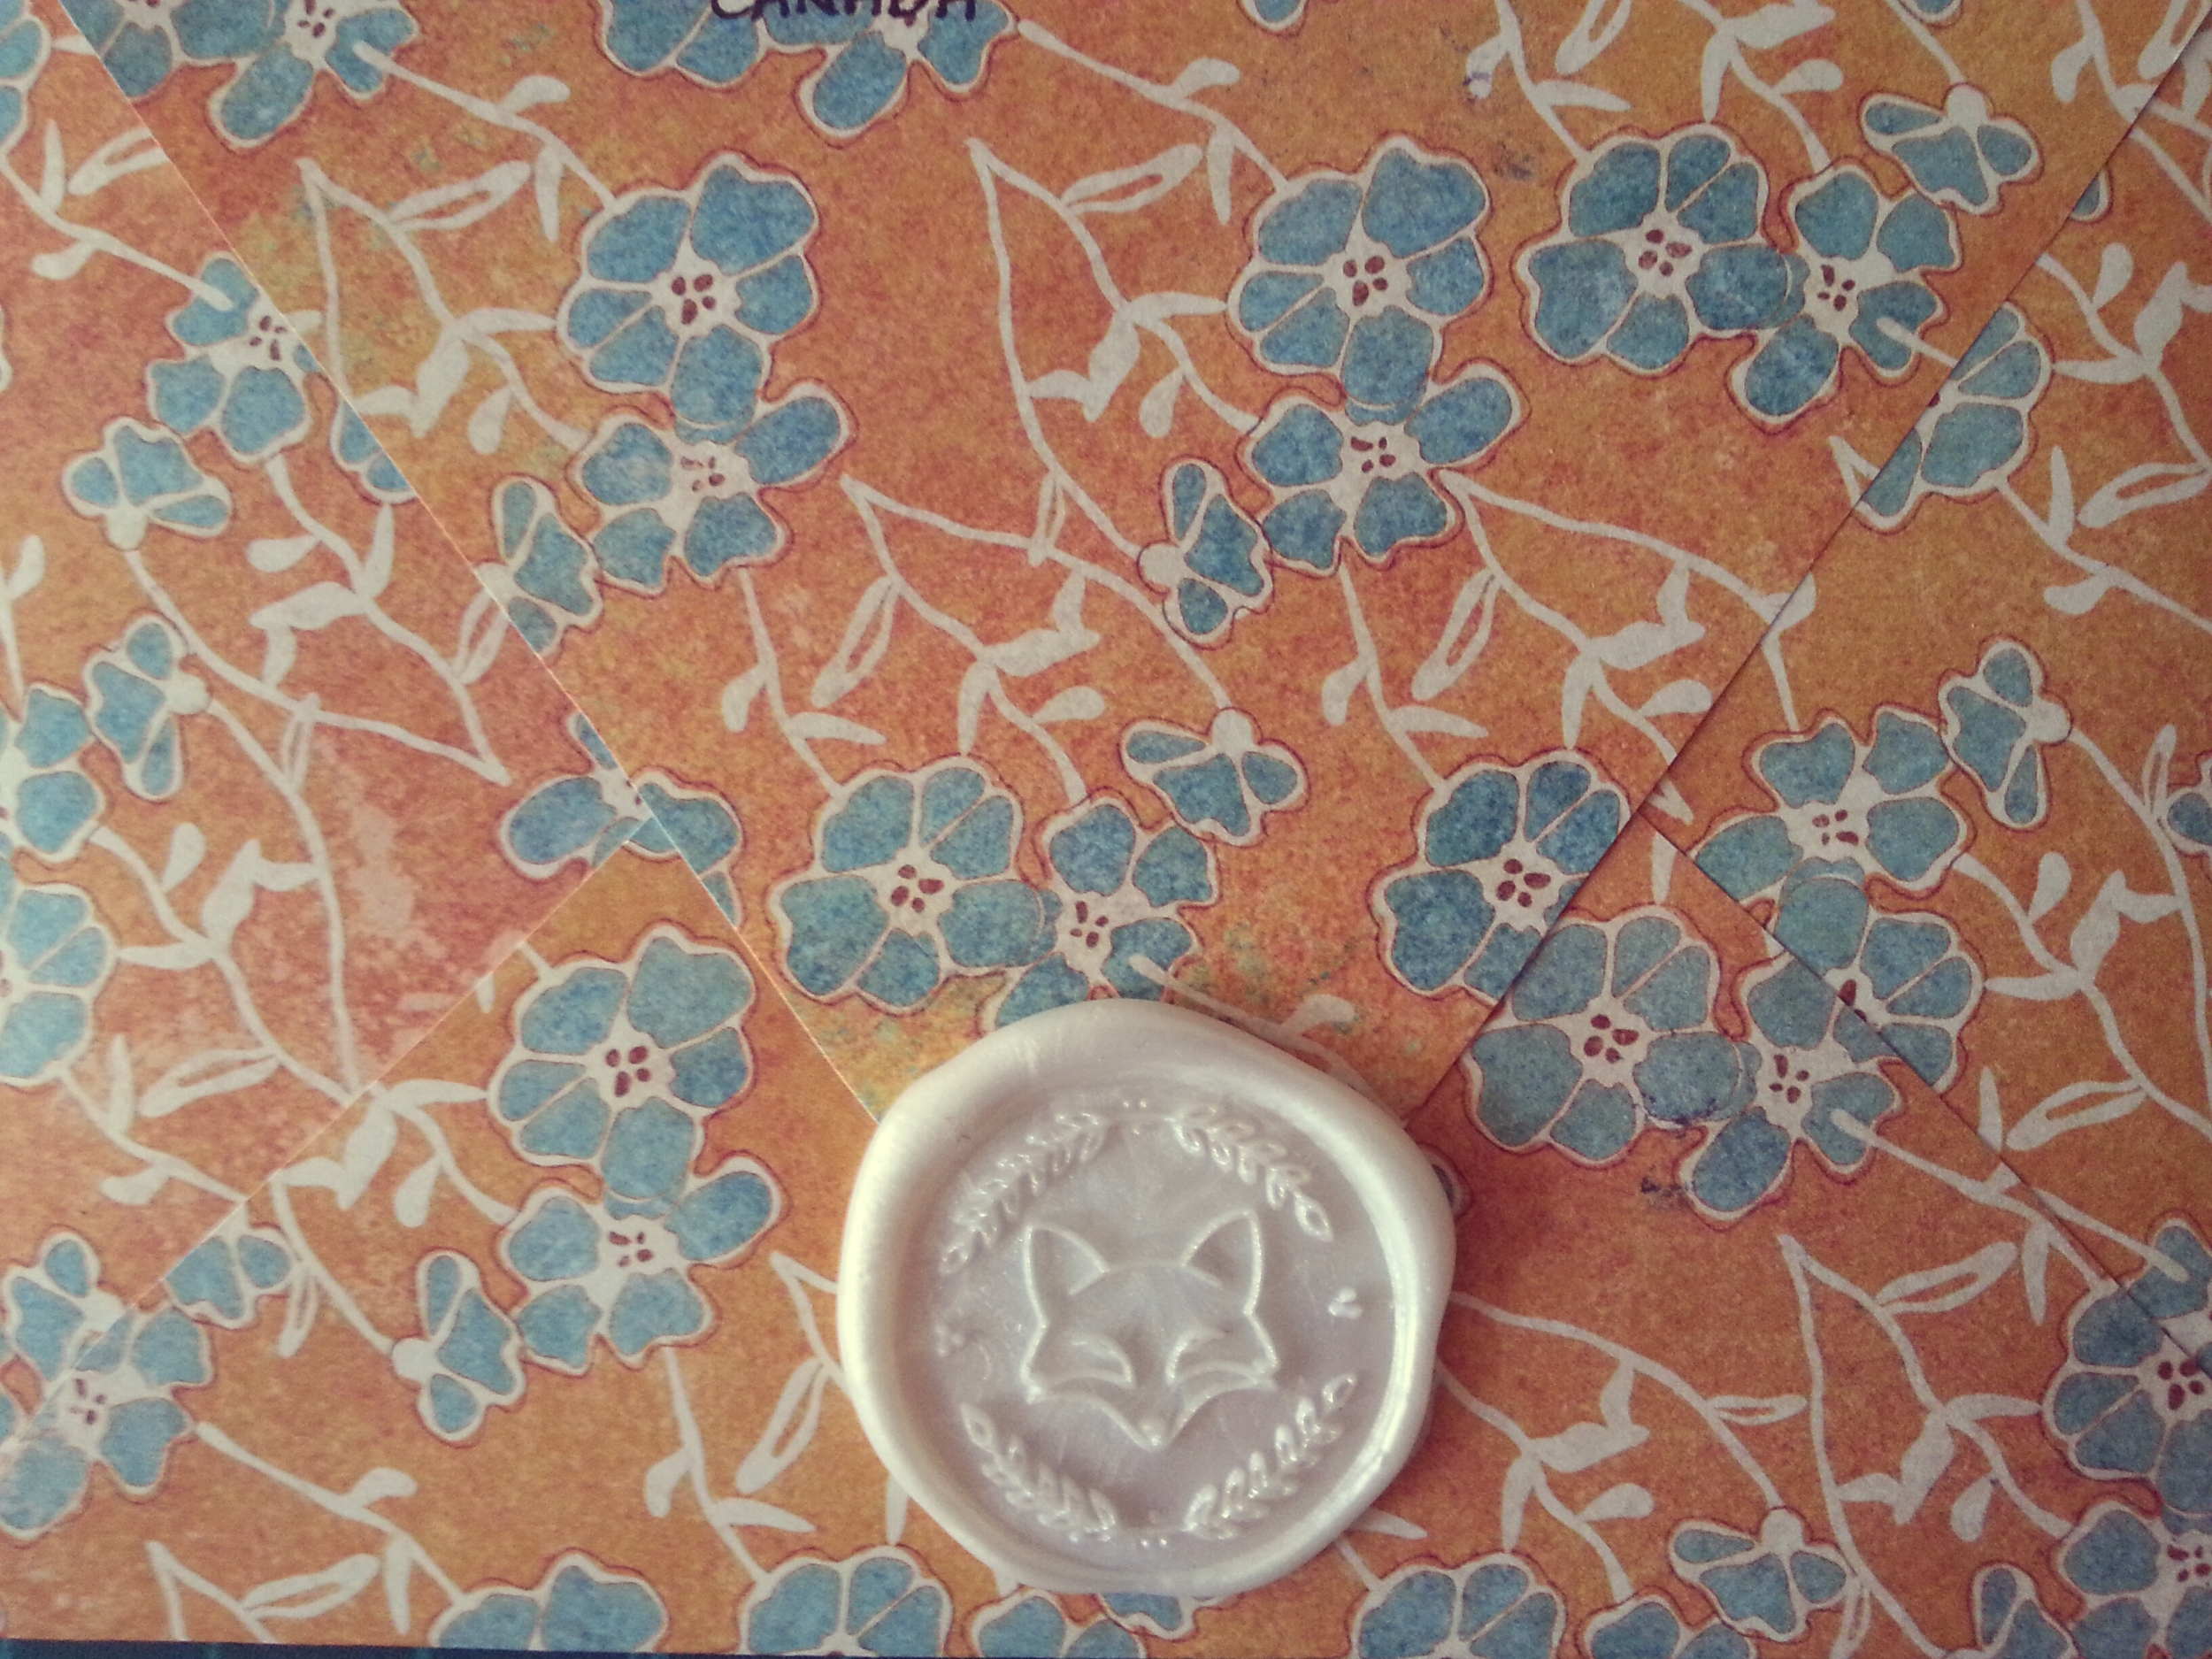 Handmade envelopes from patterned scrapbook paper sealed with a pretty wax sticker from fox and quills